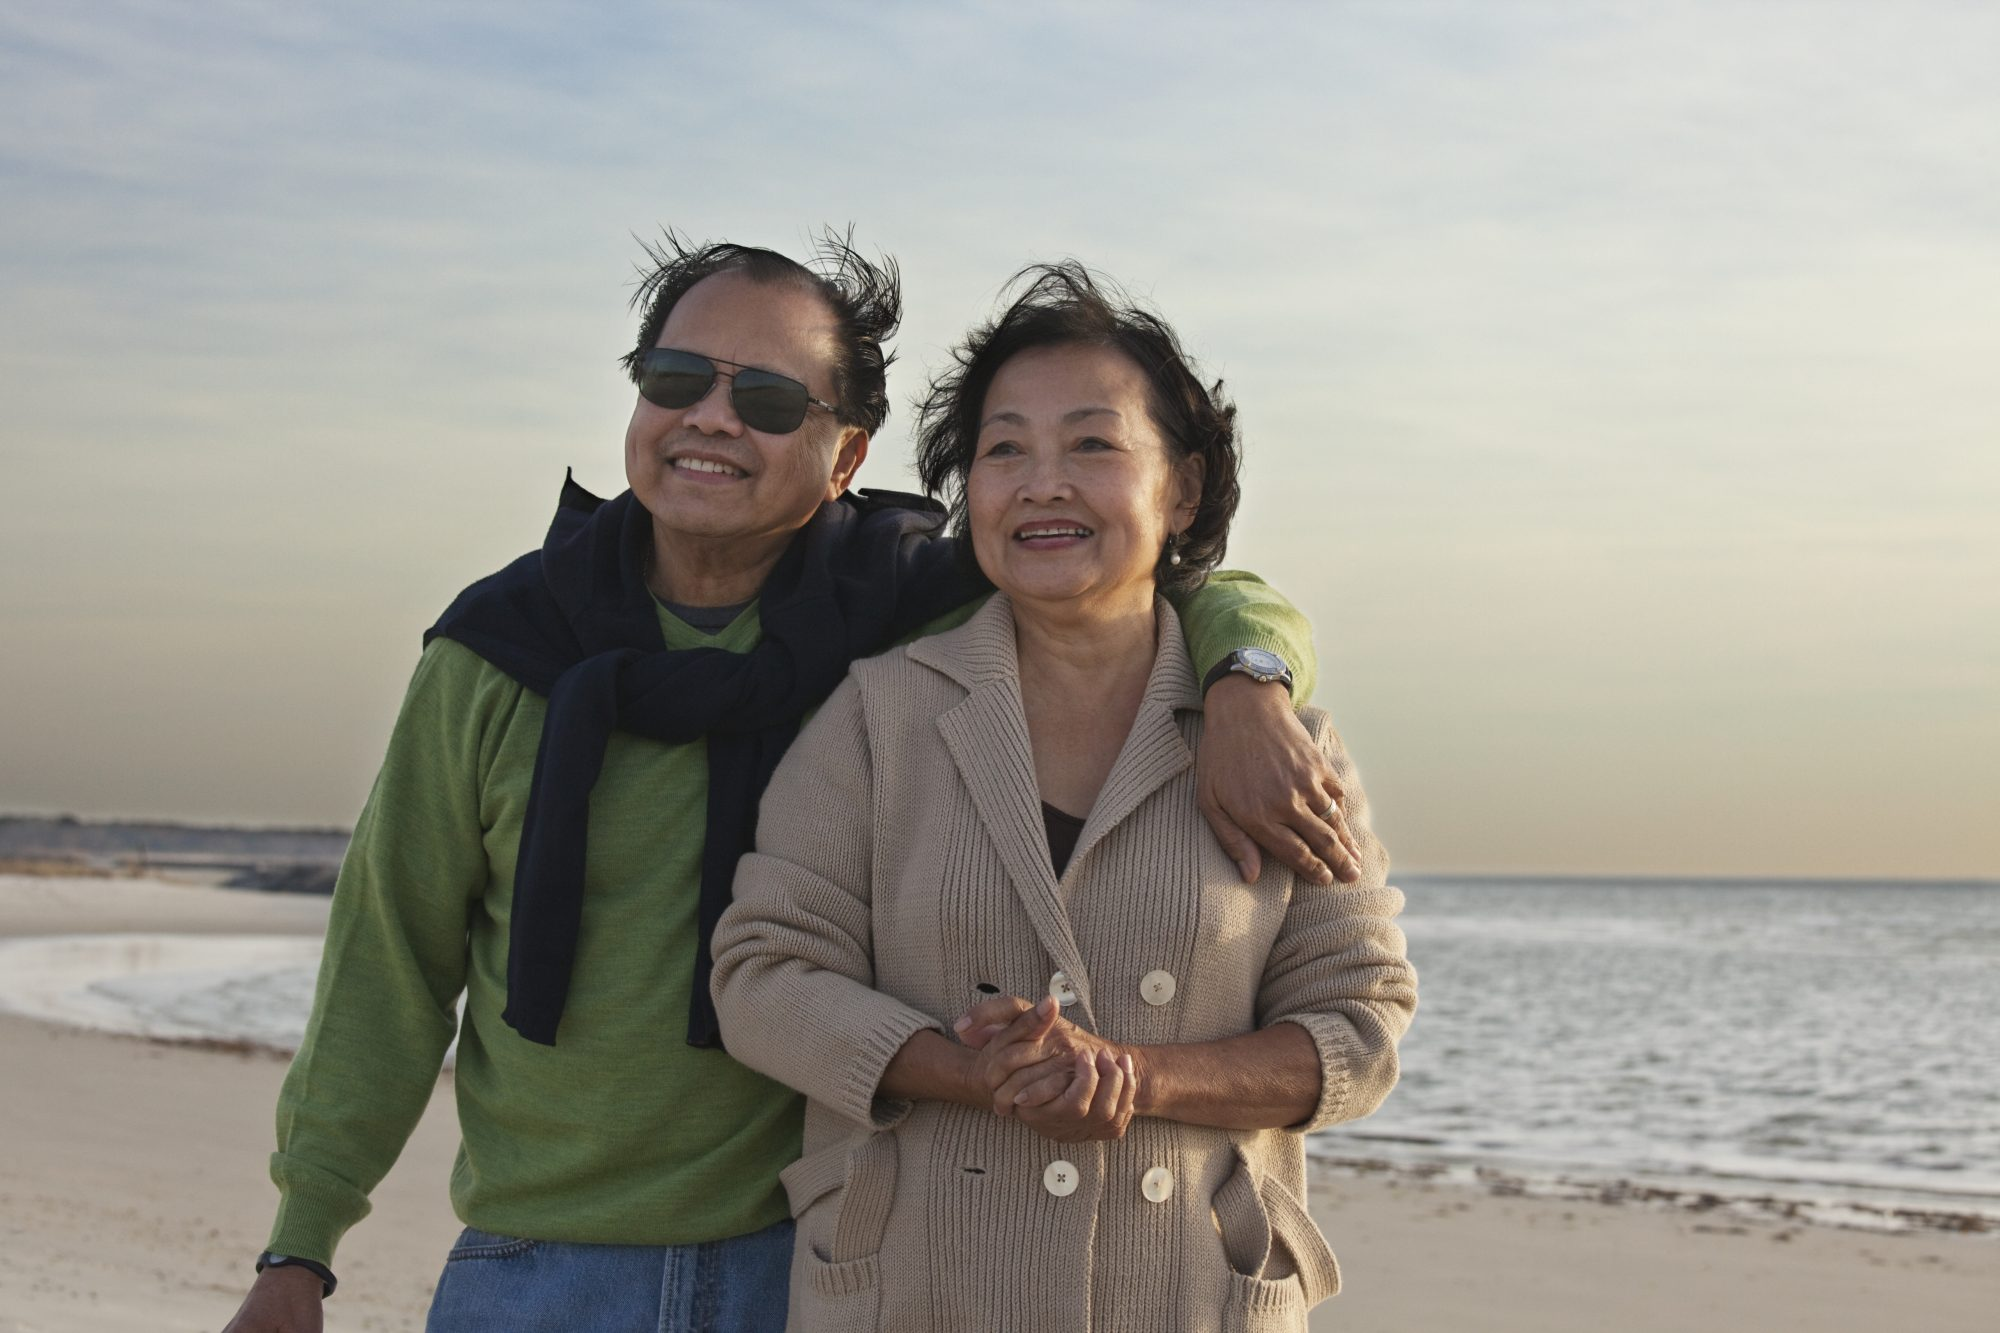 Older Couple Smiling on Beach